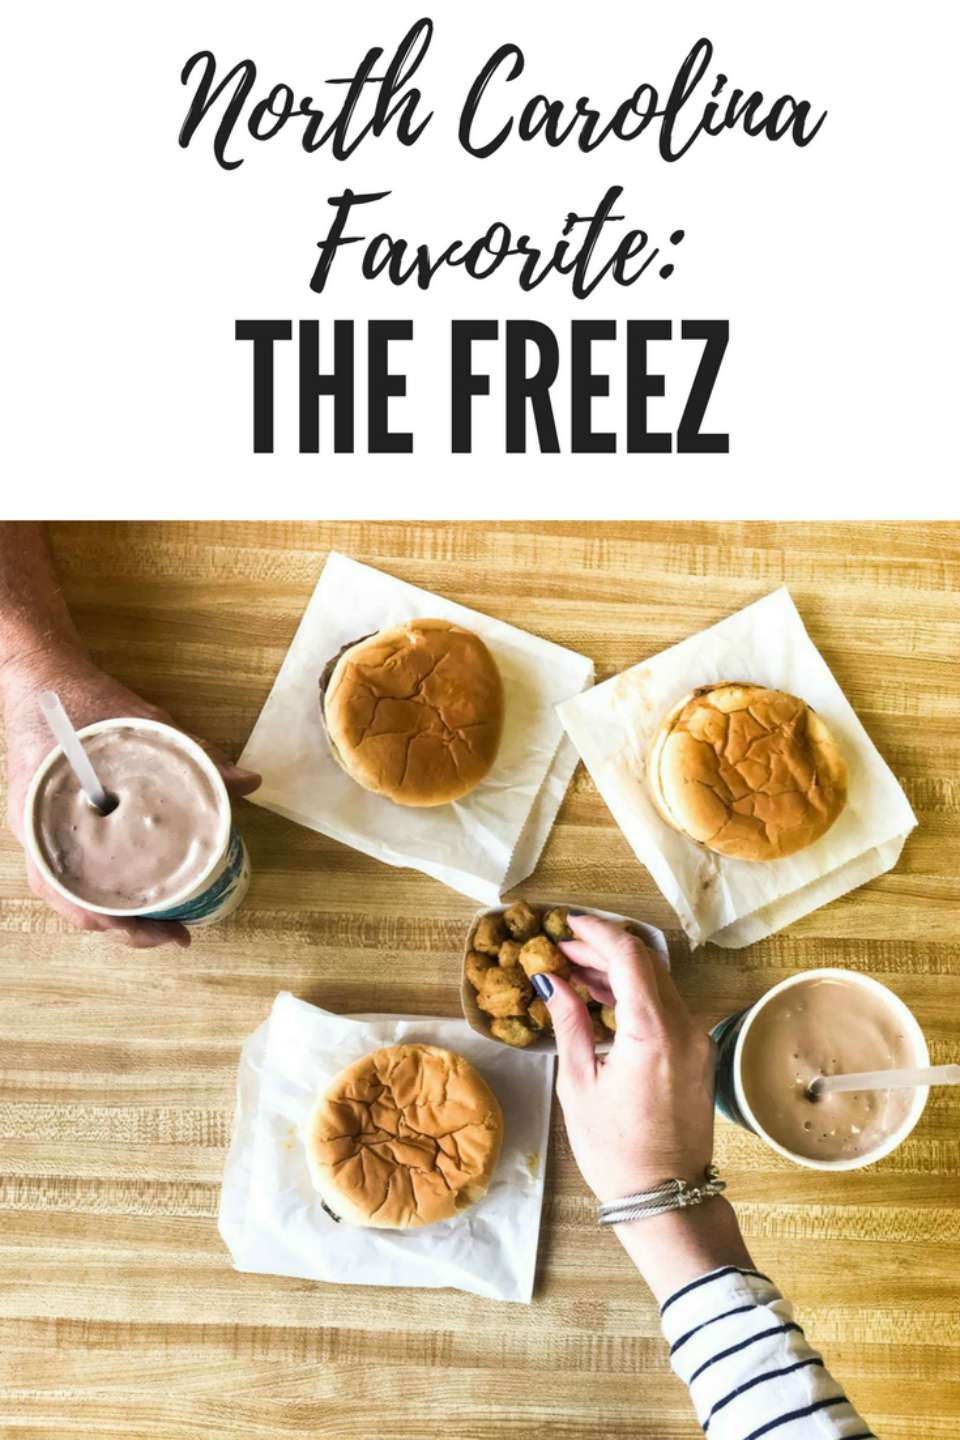 North Carolina Restaurant: The Freez - I'm Fixin' To - @mbg0112